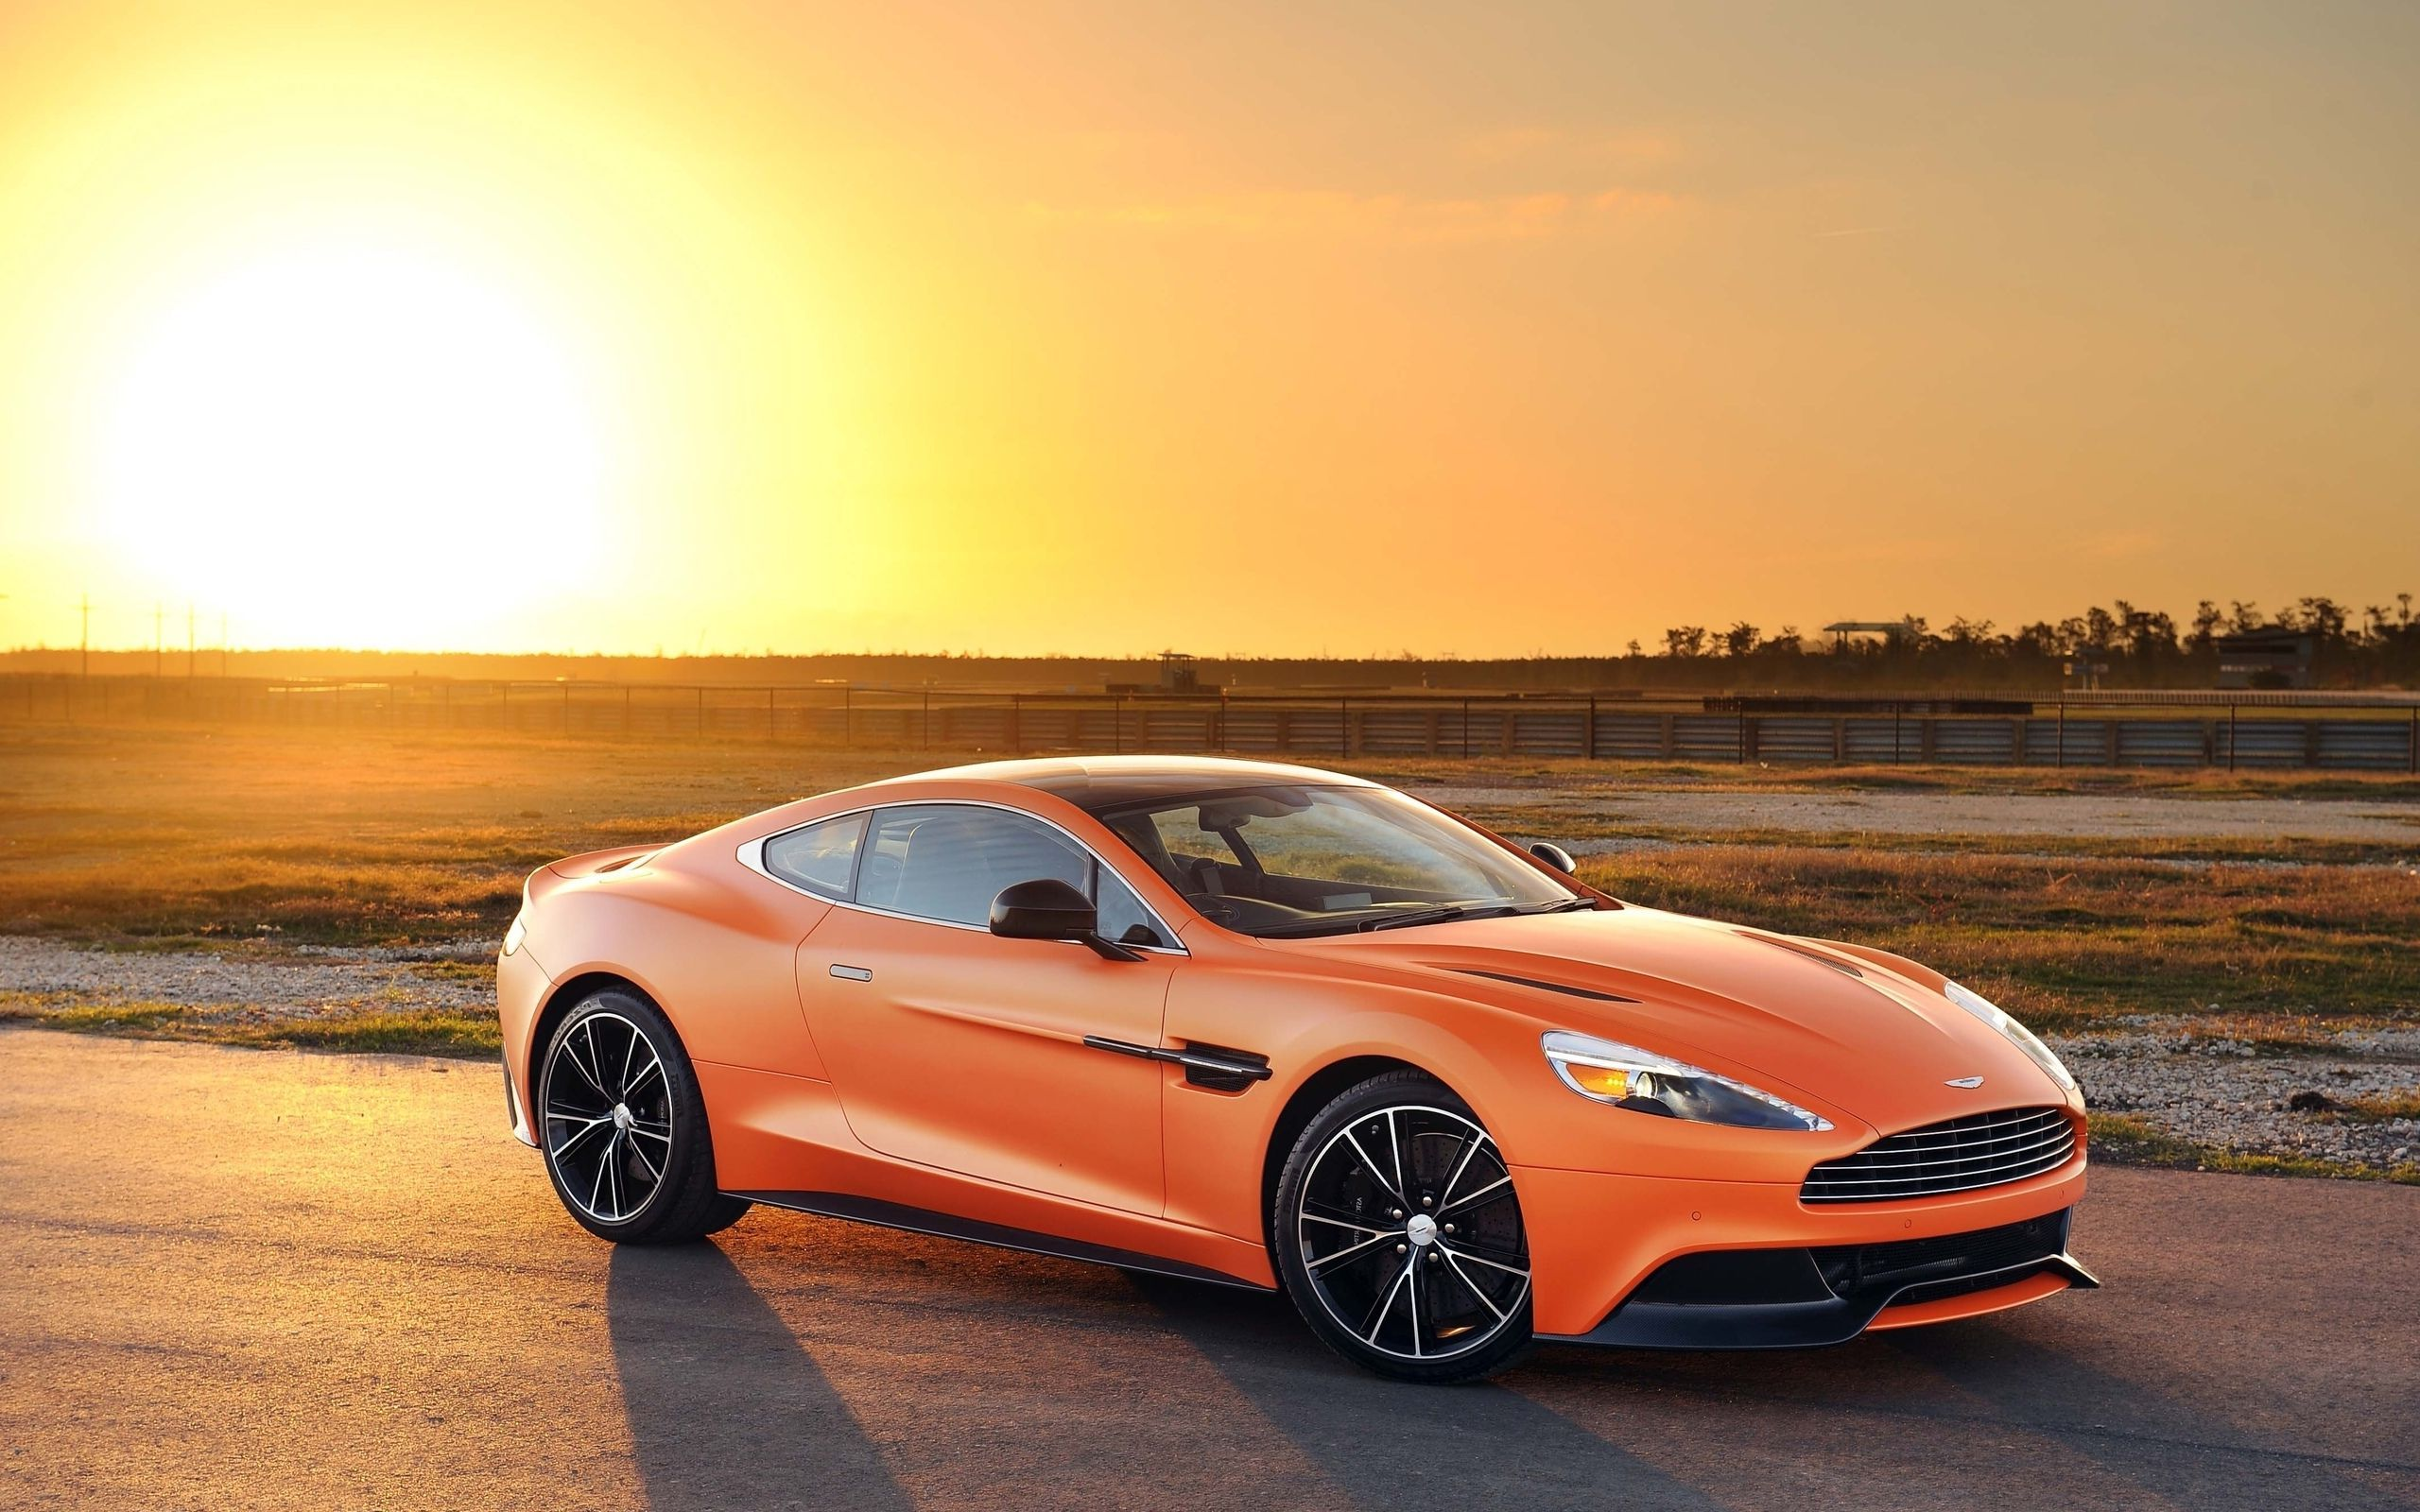 Aston Martin Vanquish Wallpaper Image Group 47 2560x1600